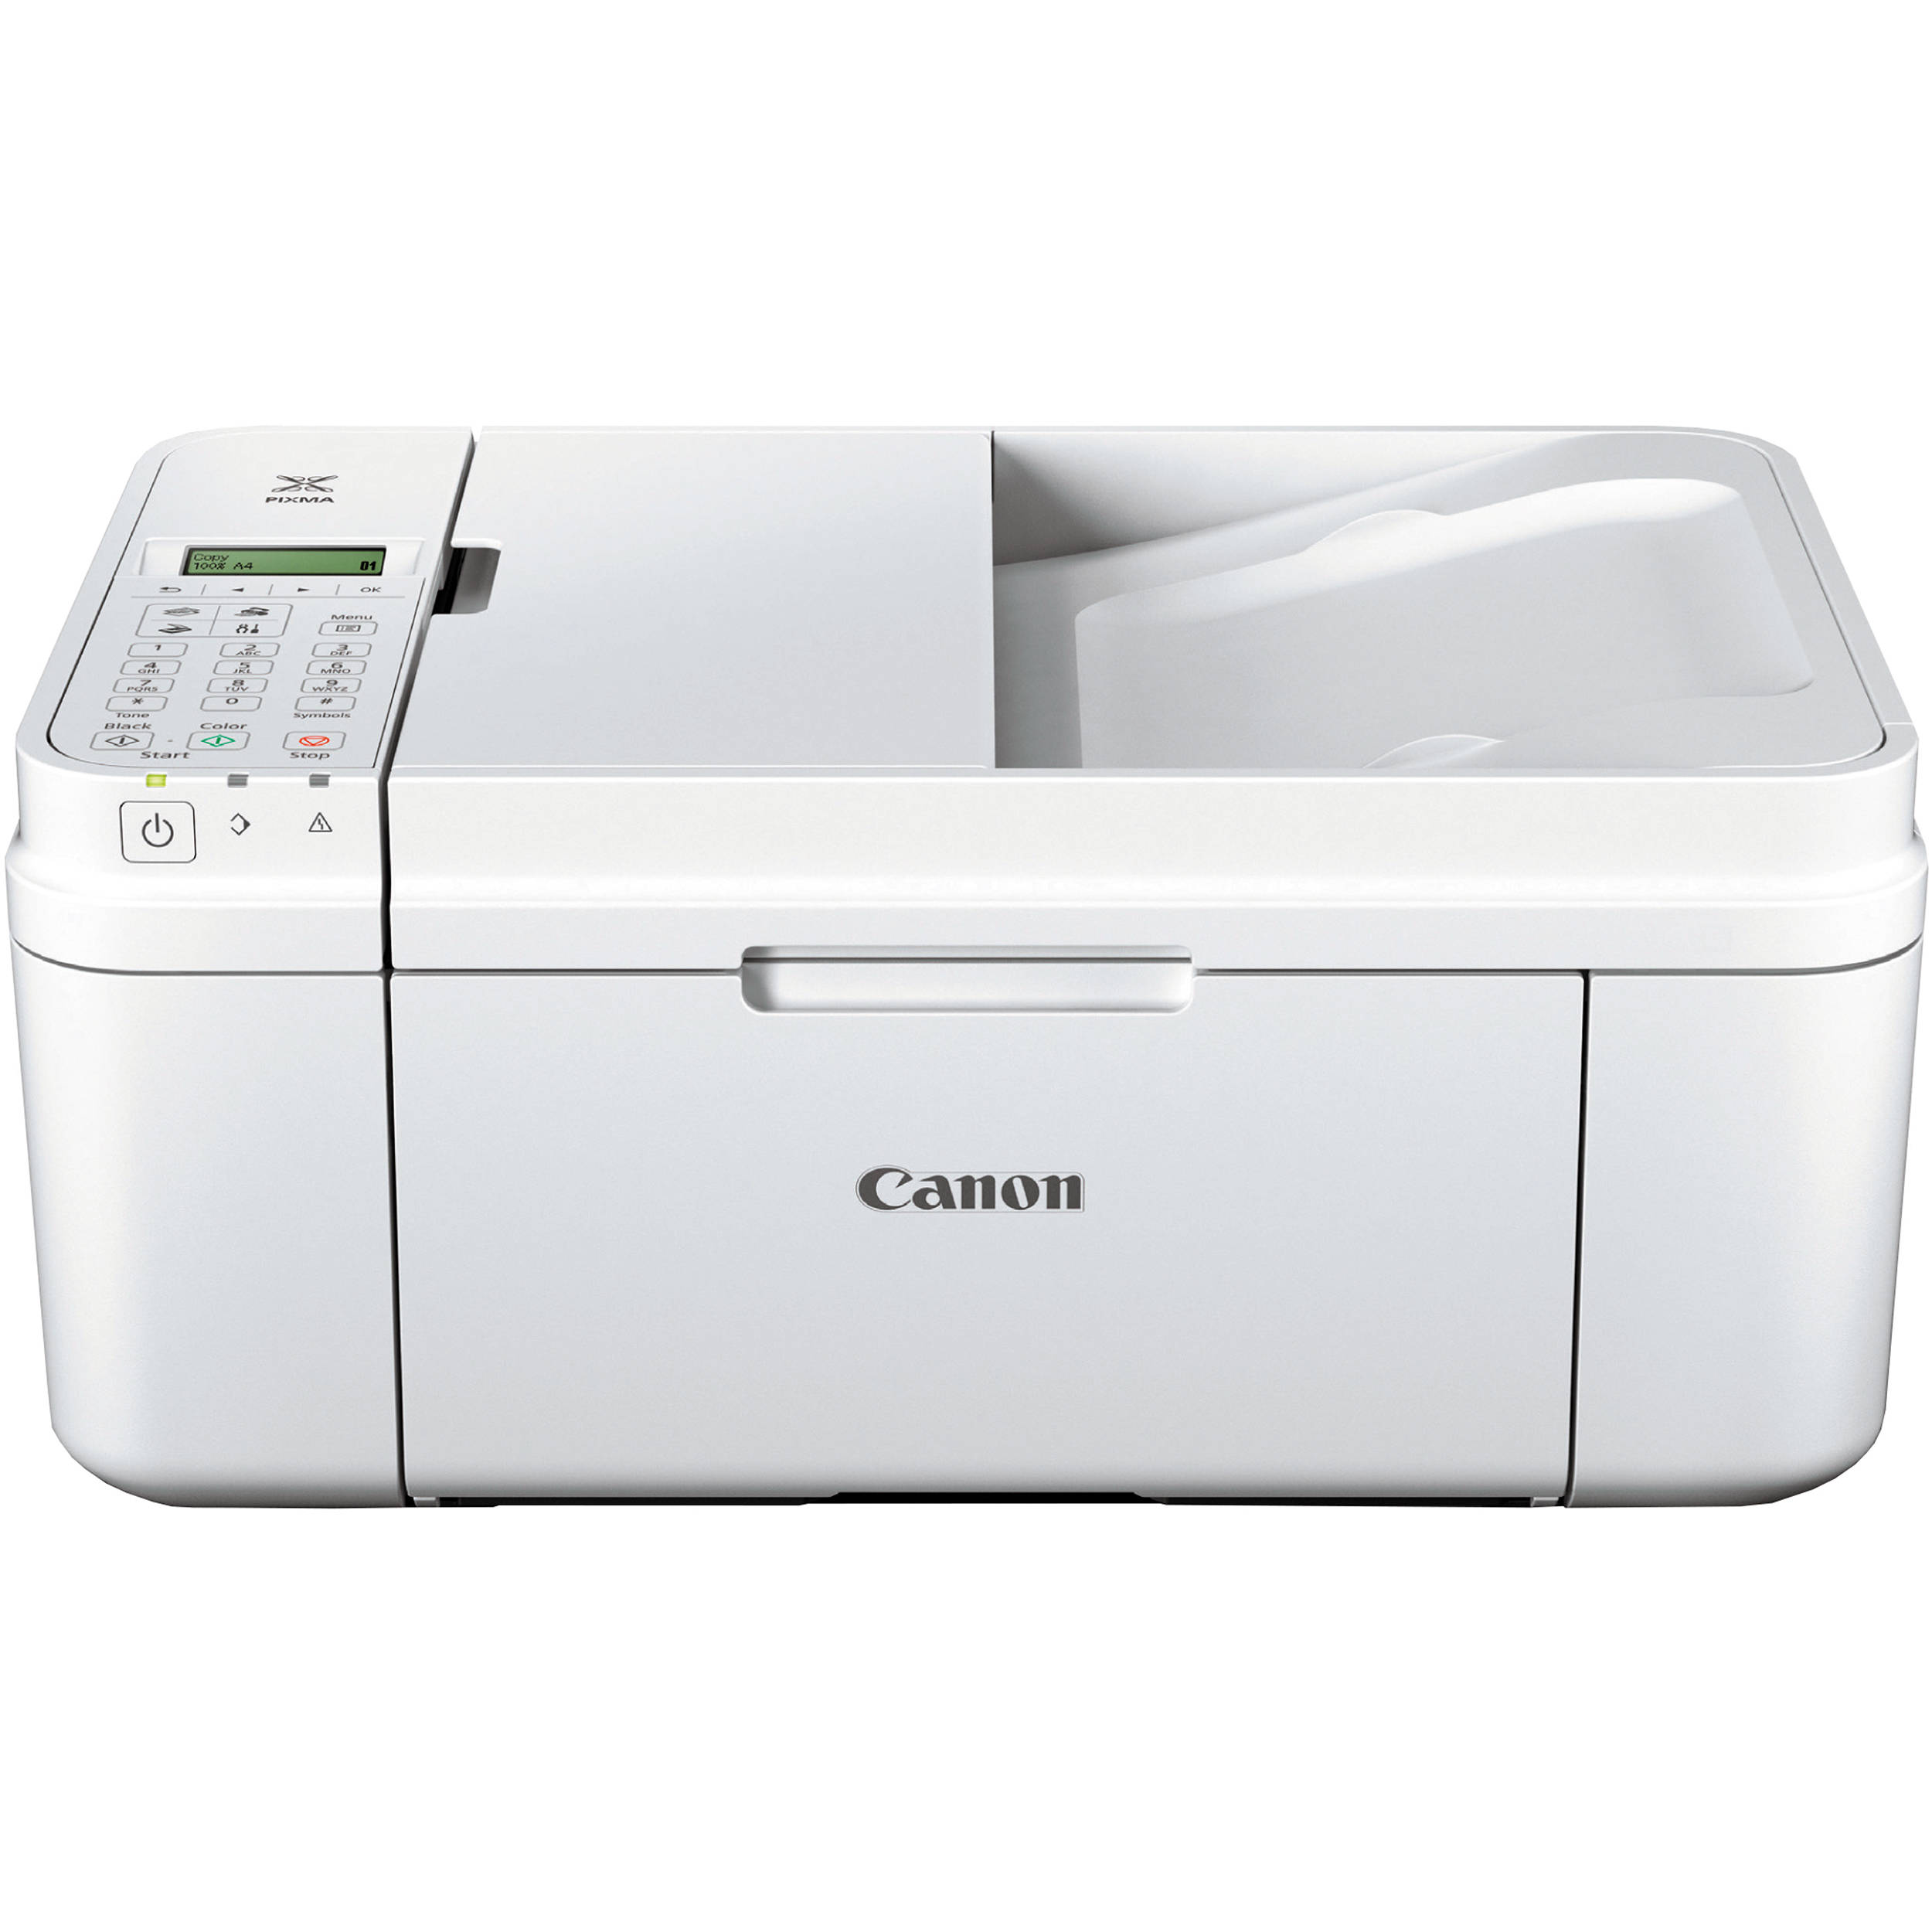 printer desktop plain print fax canon paper x office dpi multifunction products faxphone telephone monochrome ppm copier mono laser